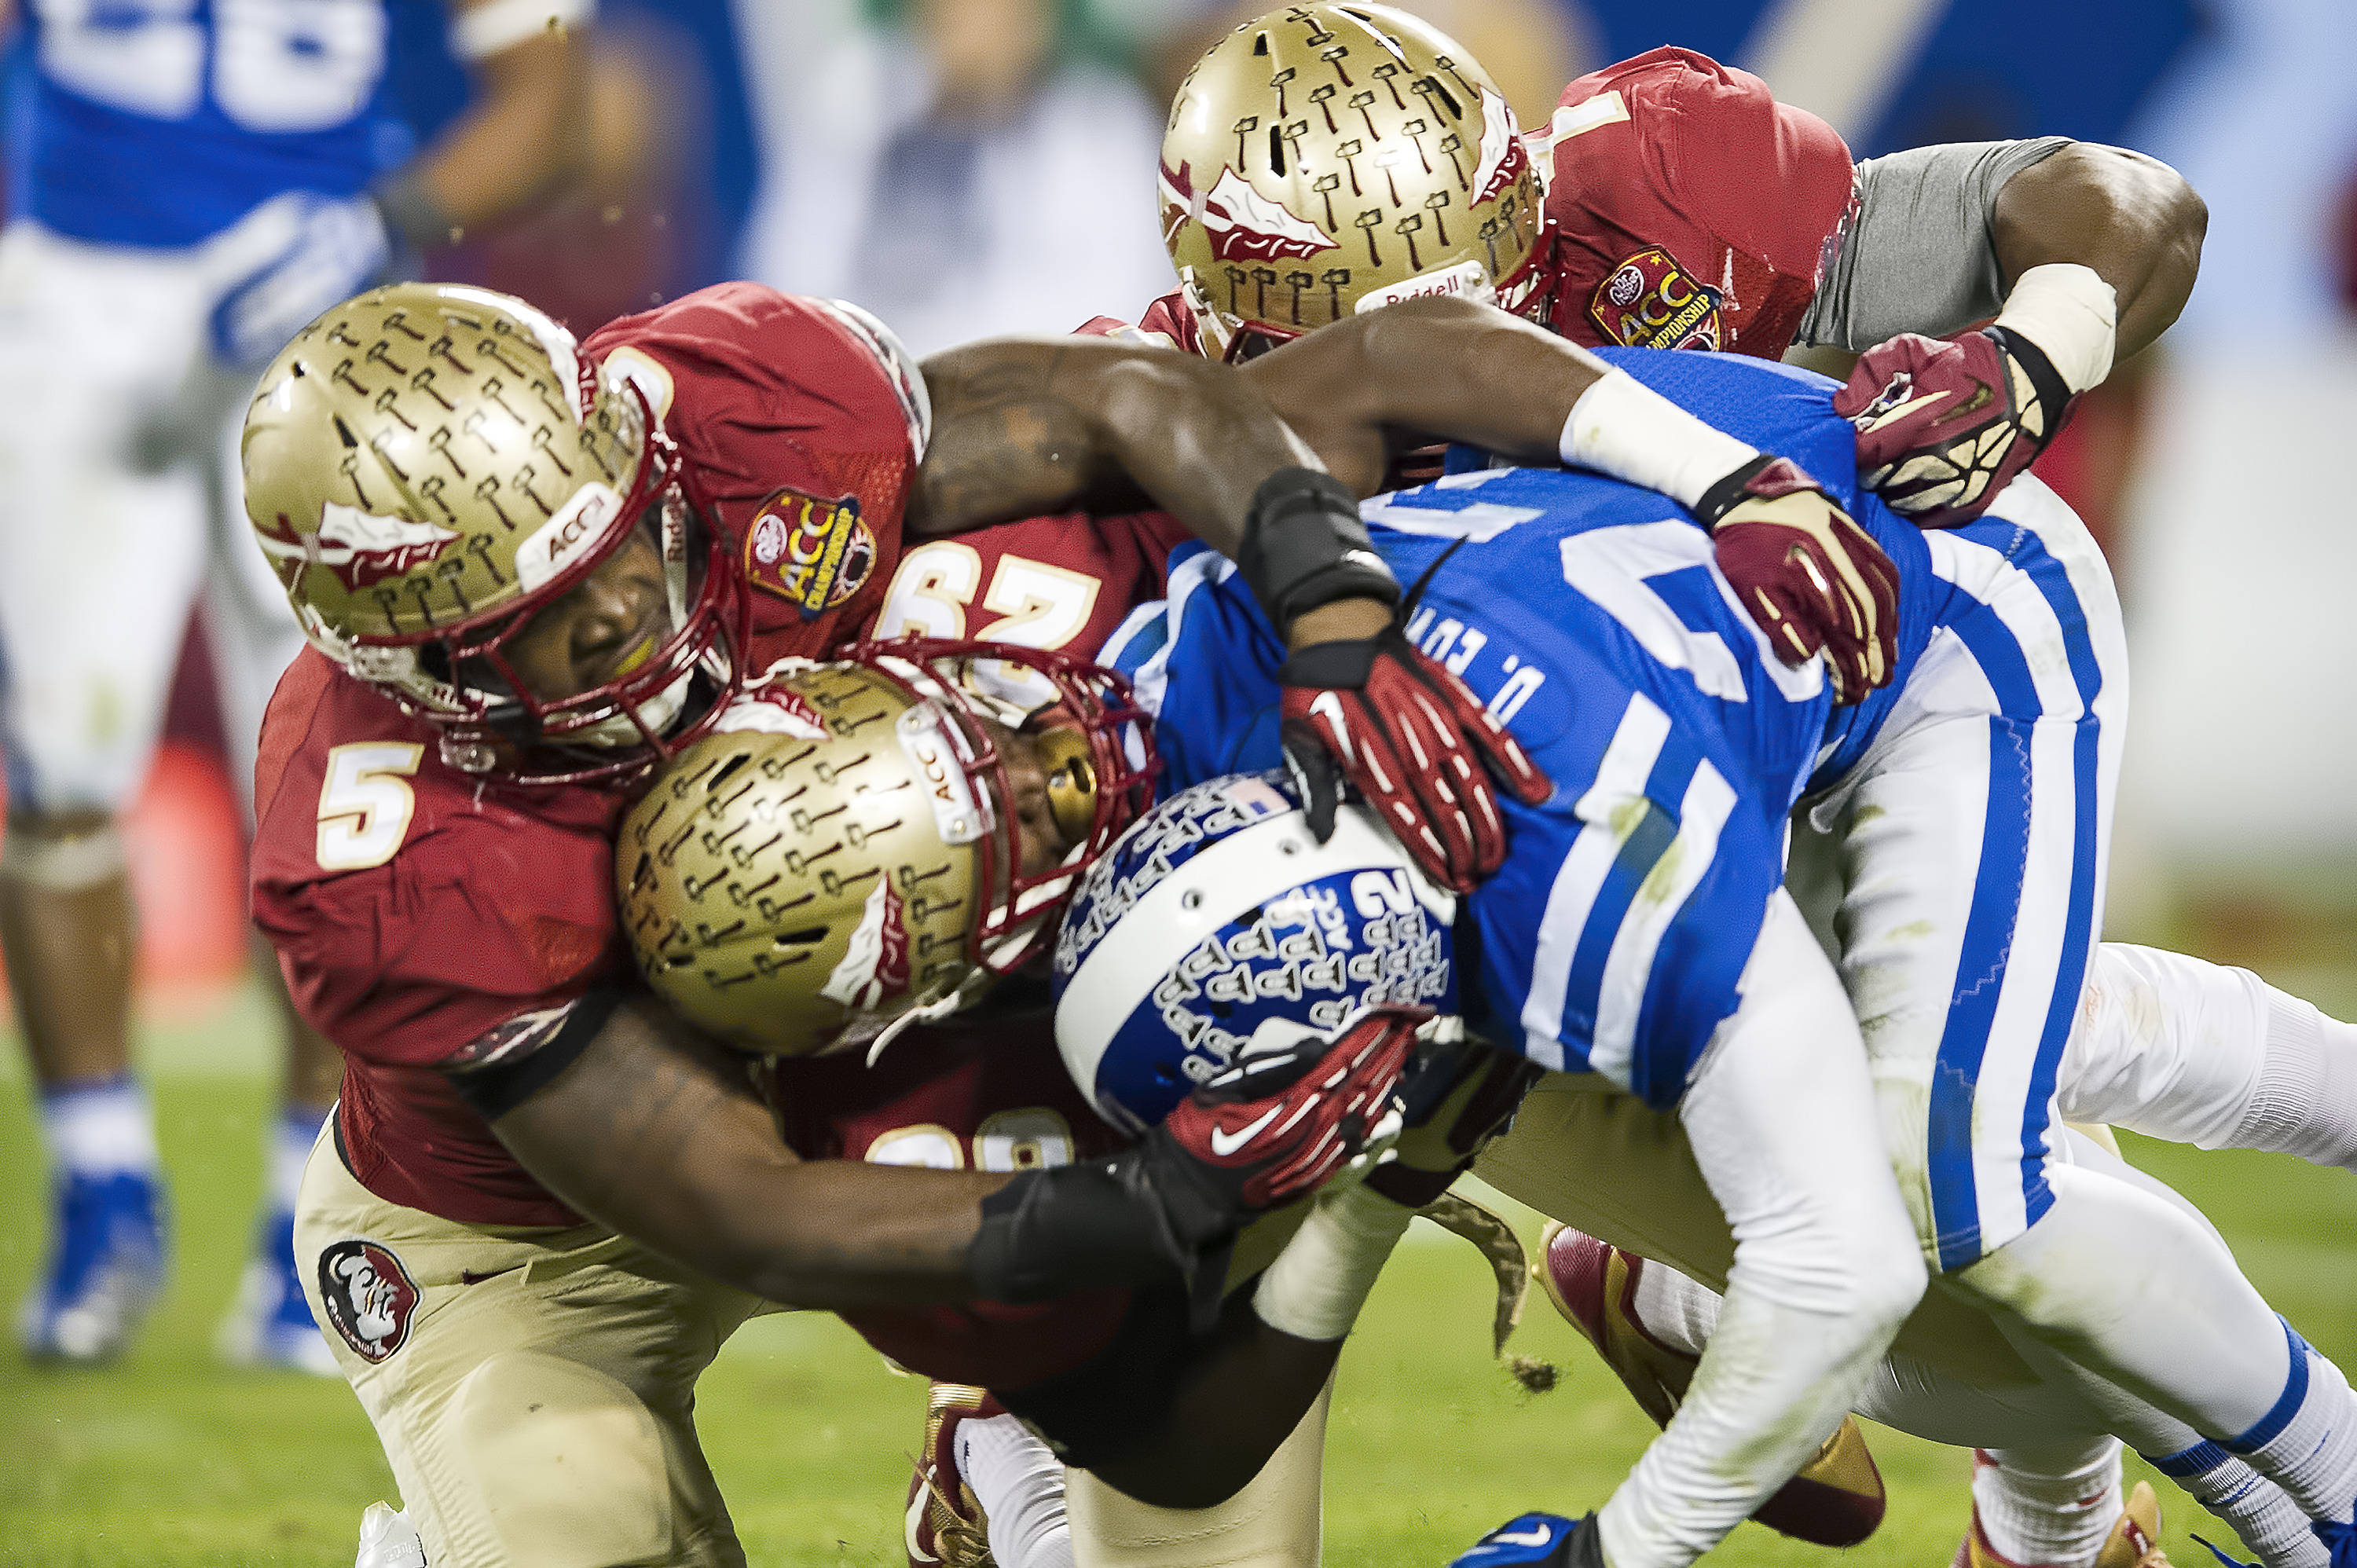 Reggie Northrup and Nate Andrews clamp down on a Duke running back